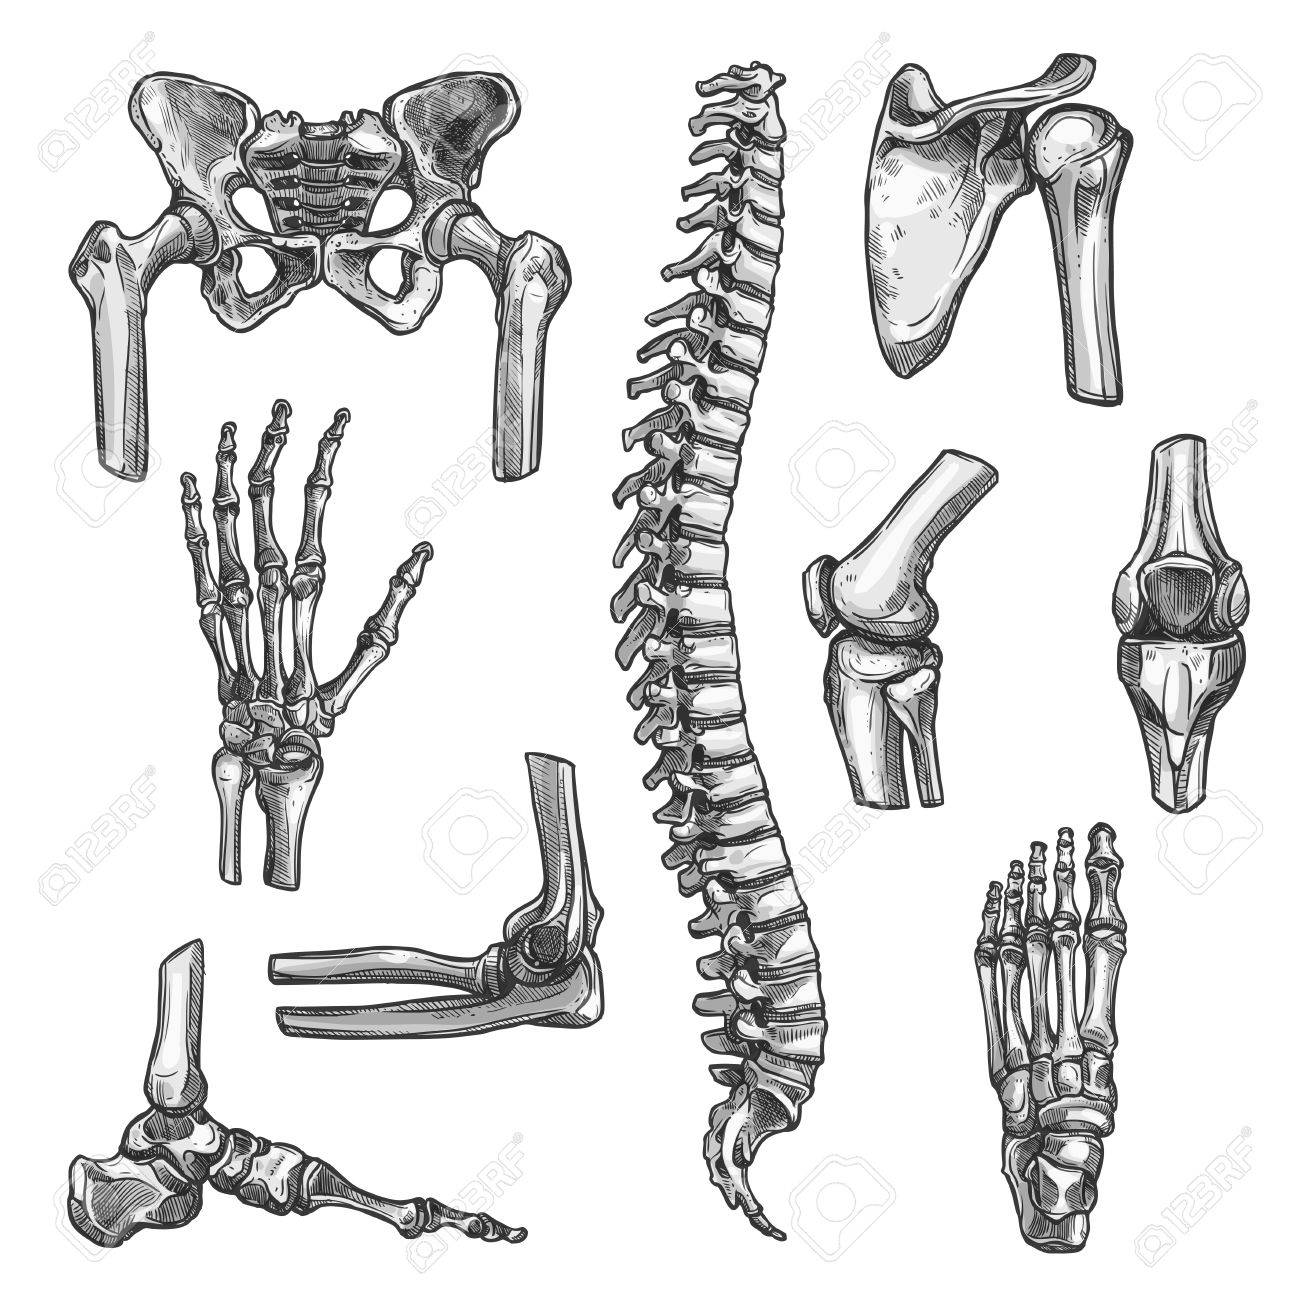 Bone and joints sketches set. Human skeleton hand, knee and shoulder, hip, foot, spine, leg and arm, finger, elbow, pelvis, thorax, ankle, wrist icon for orthopedics and rheumatology medicine design - 85567817